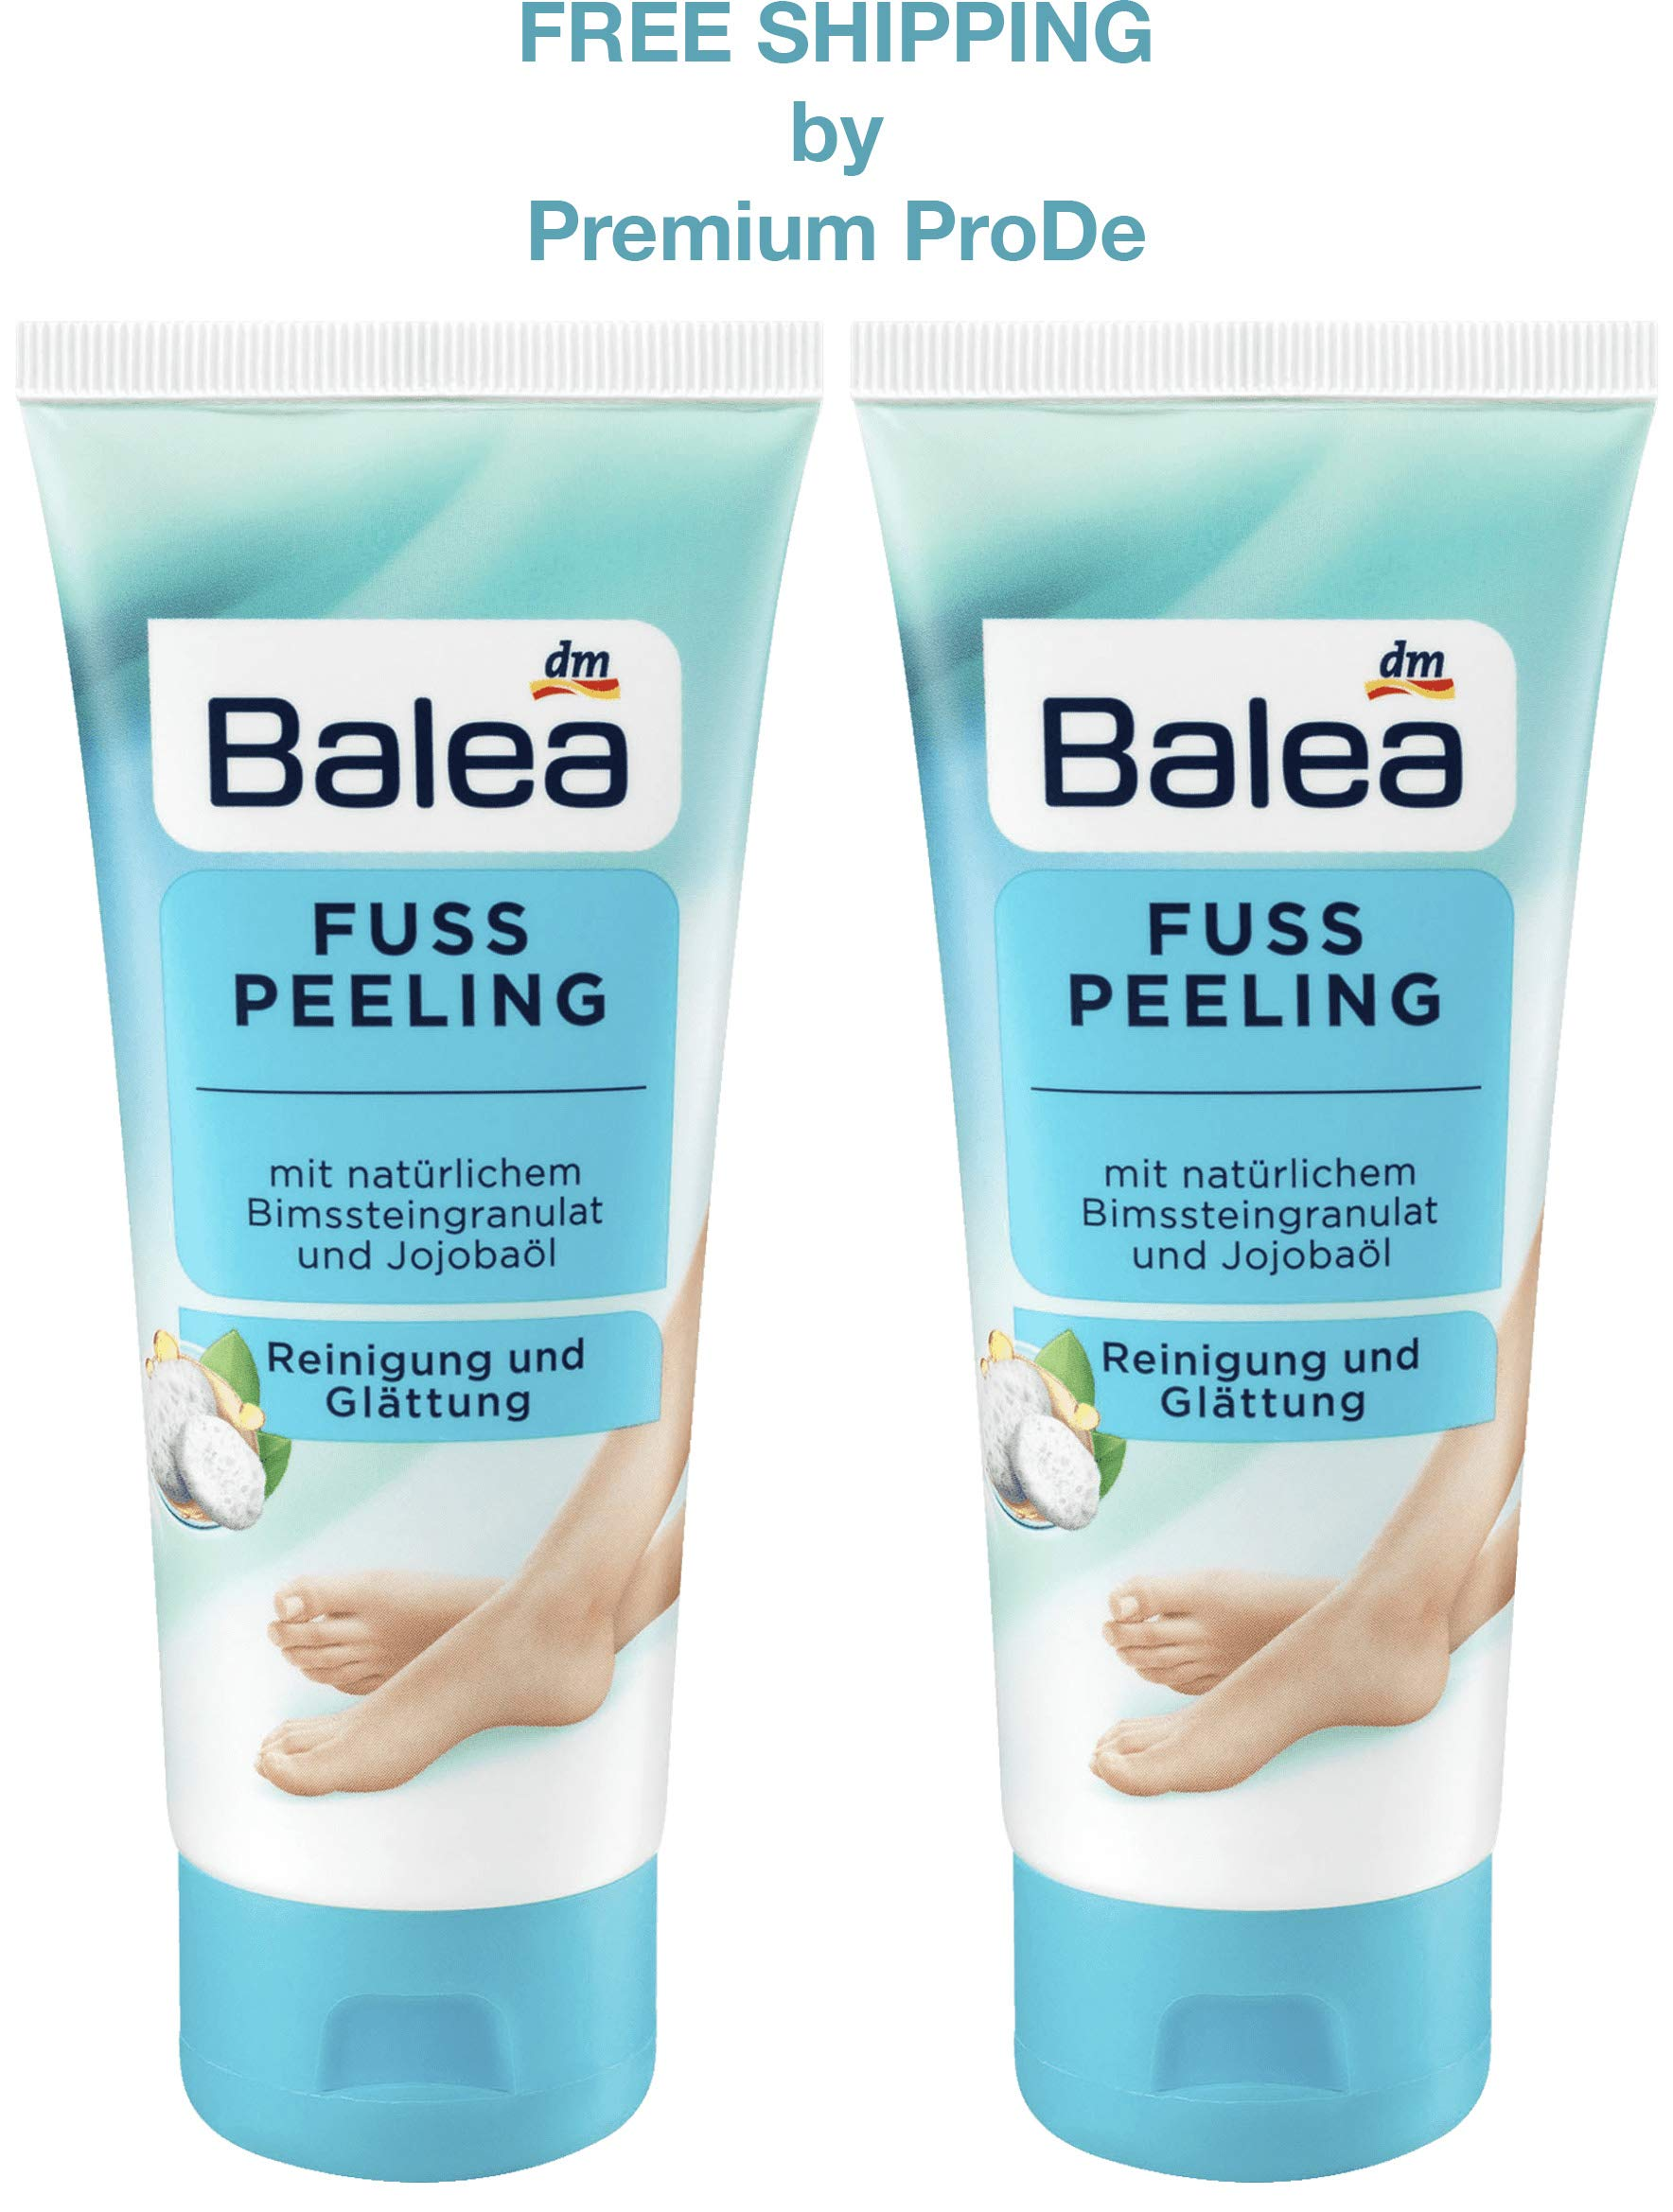 Balea Foot Scrub with Jojoba Oil, Natural Pumice Stone Granules, Horse Chestnut Extract, Urea and Vitamin E, 2 x 100 ml, Germany by Balea